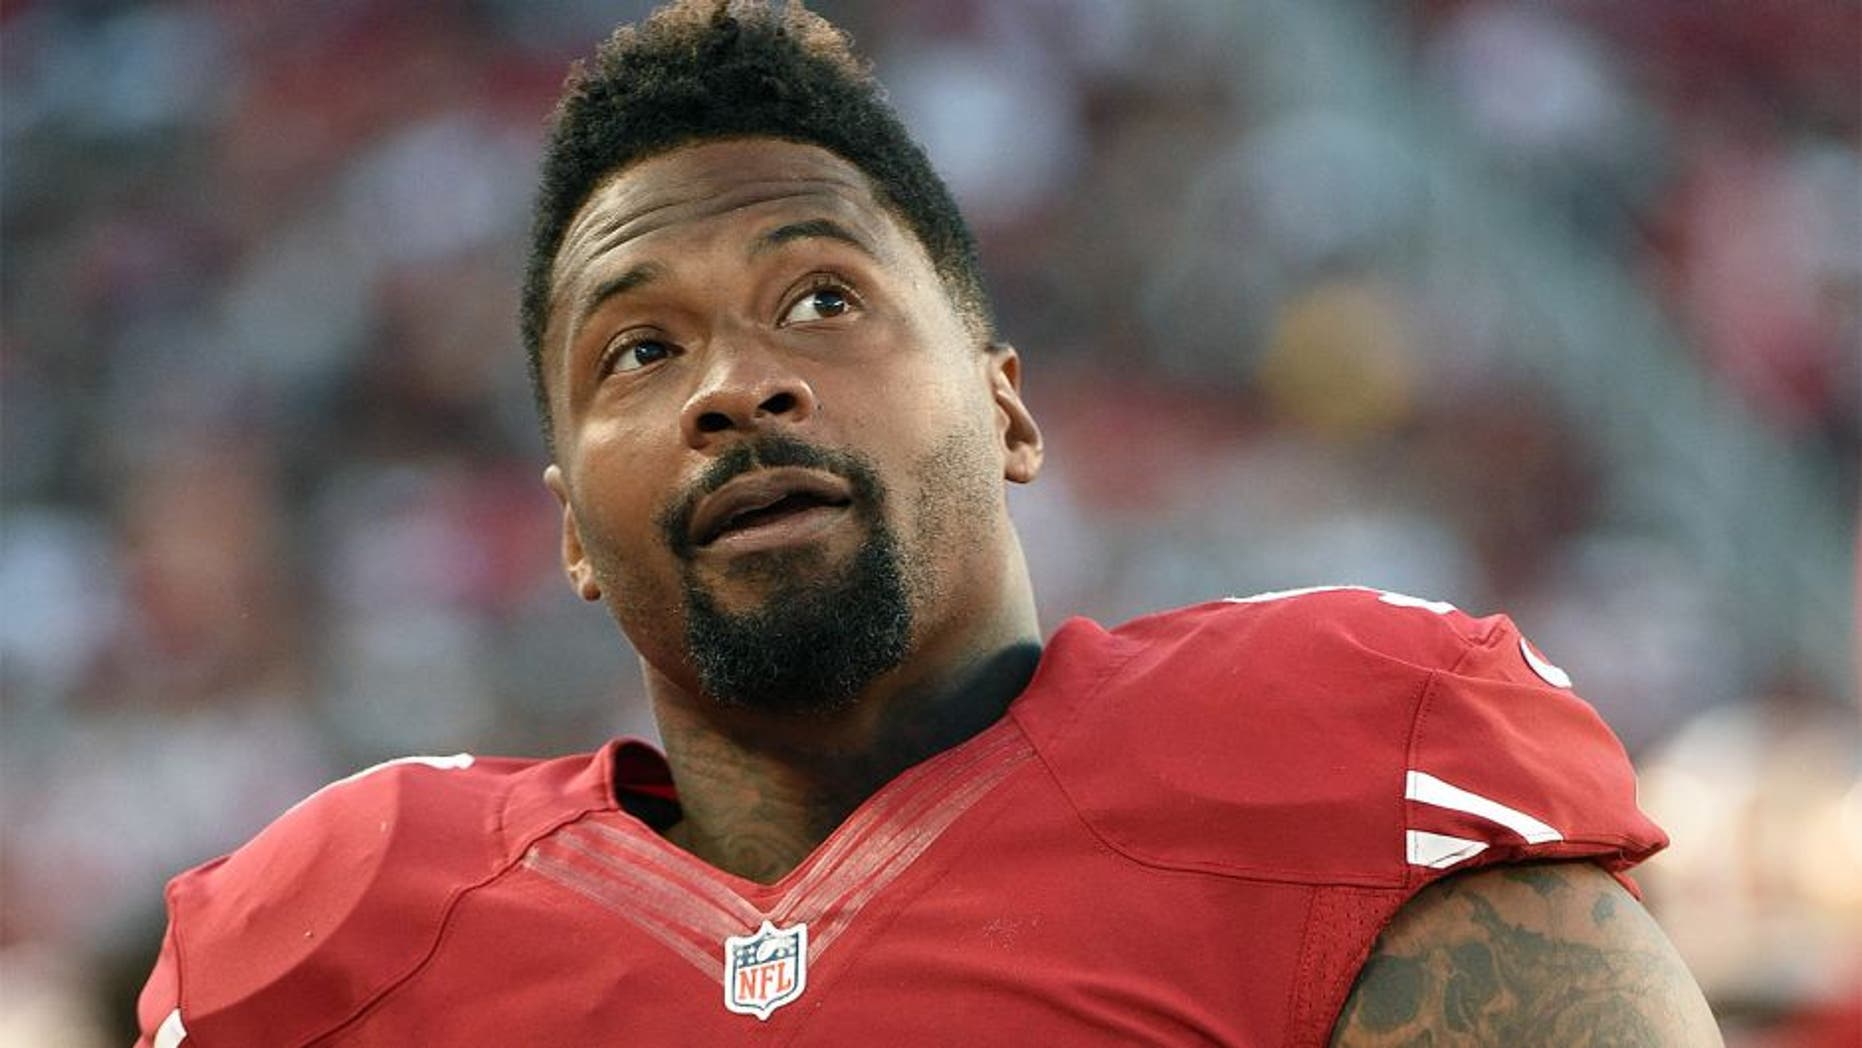 August 23, 2015; Santa Clara, CA, USA; San Francisco 49ers defensive tackle Darnell Dockett (90) during the fourth quarter against the Dallas Cowboys at Levi's Stadium. The 49ers defeated the Cowboys 23-6. Mandatory Credit: Kyle Terada-USA TODAY Sports